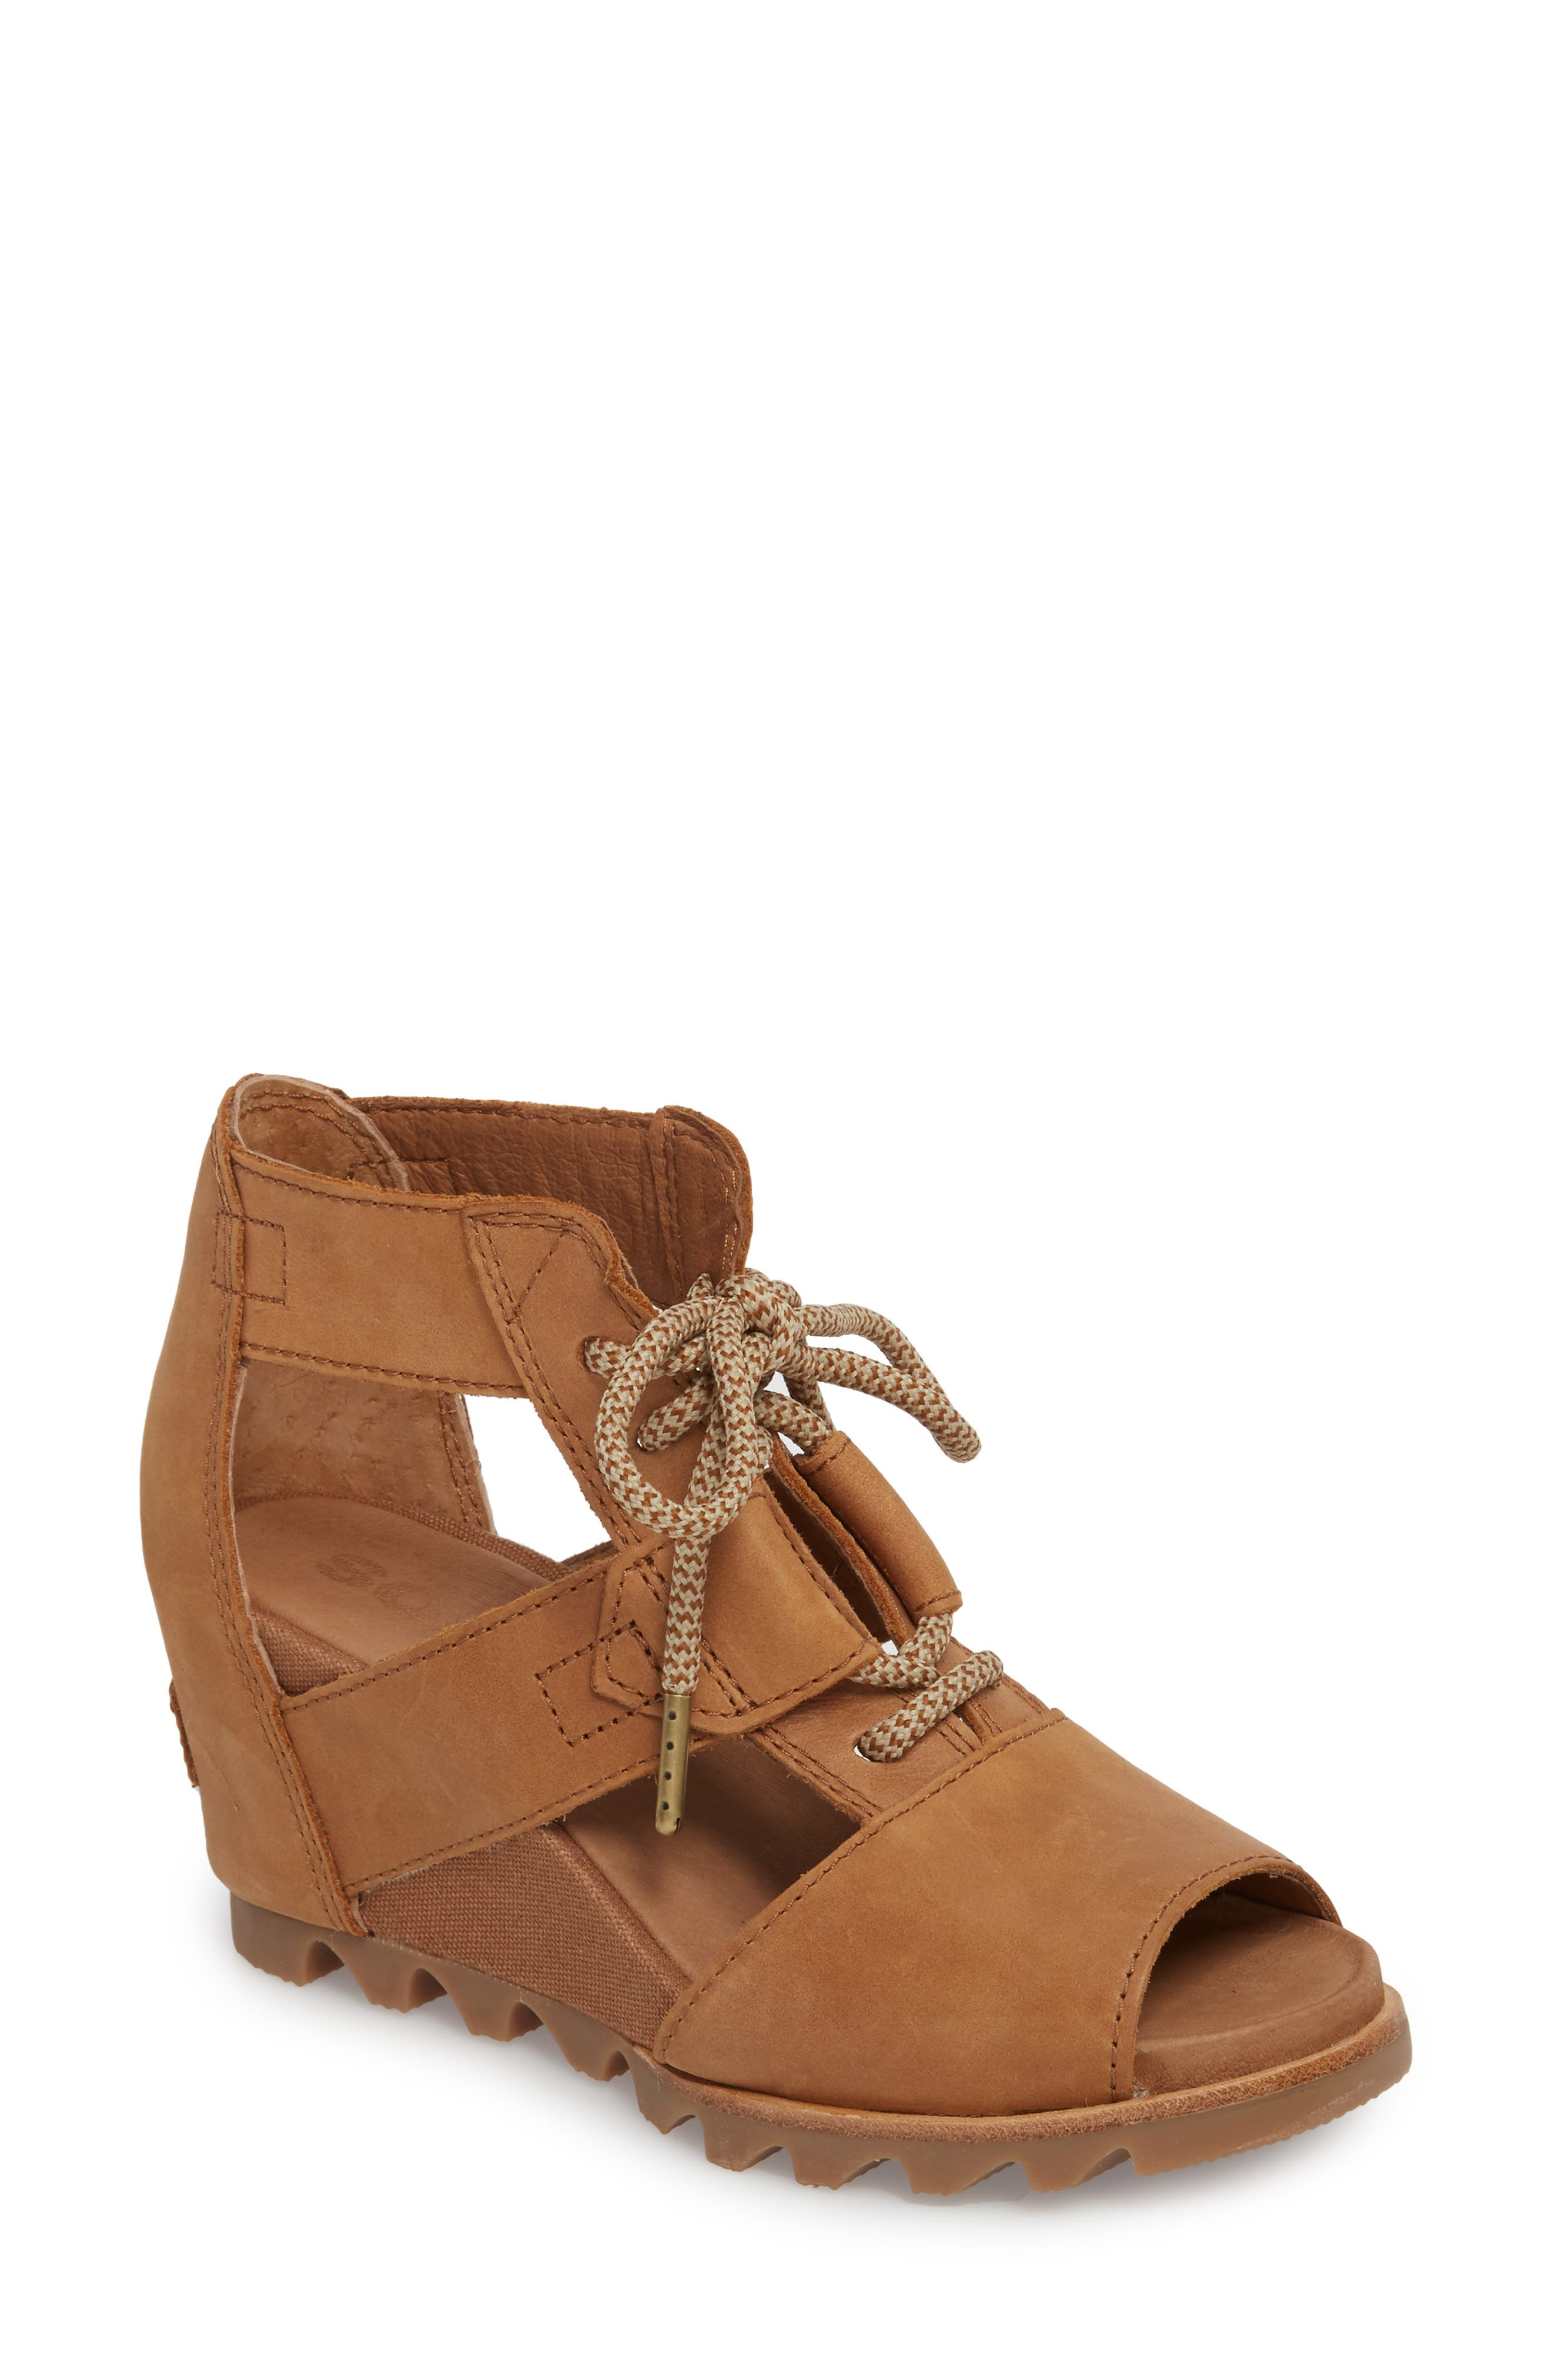 'Joanie' Cage Sandal,                         Main,                         color, Camel Brown